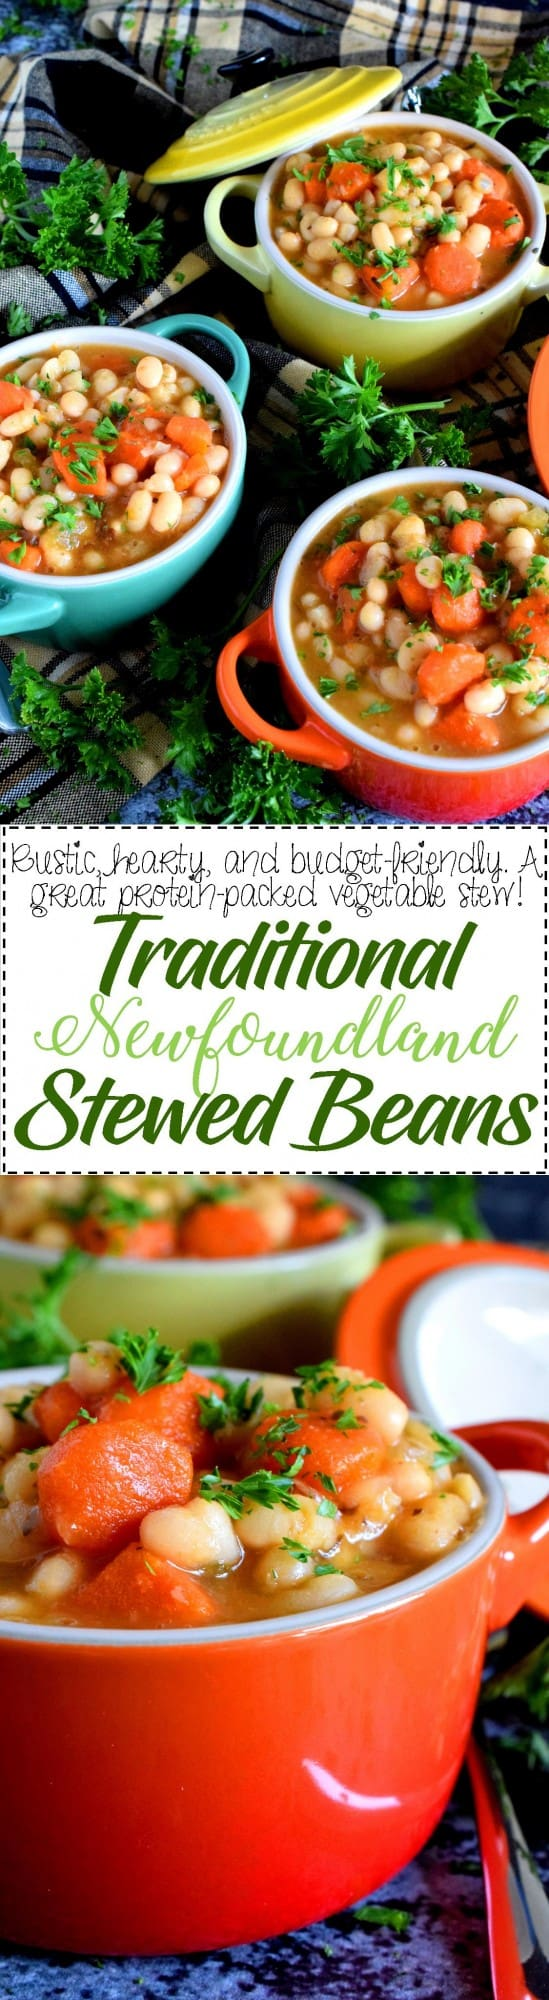 Traditional Newfoundland Stewed Beans